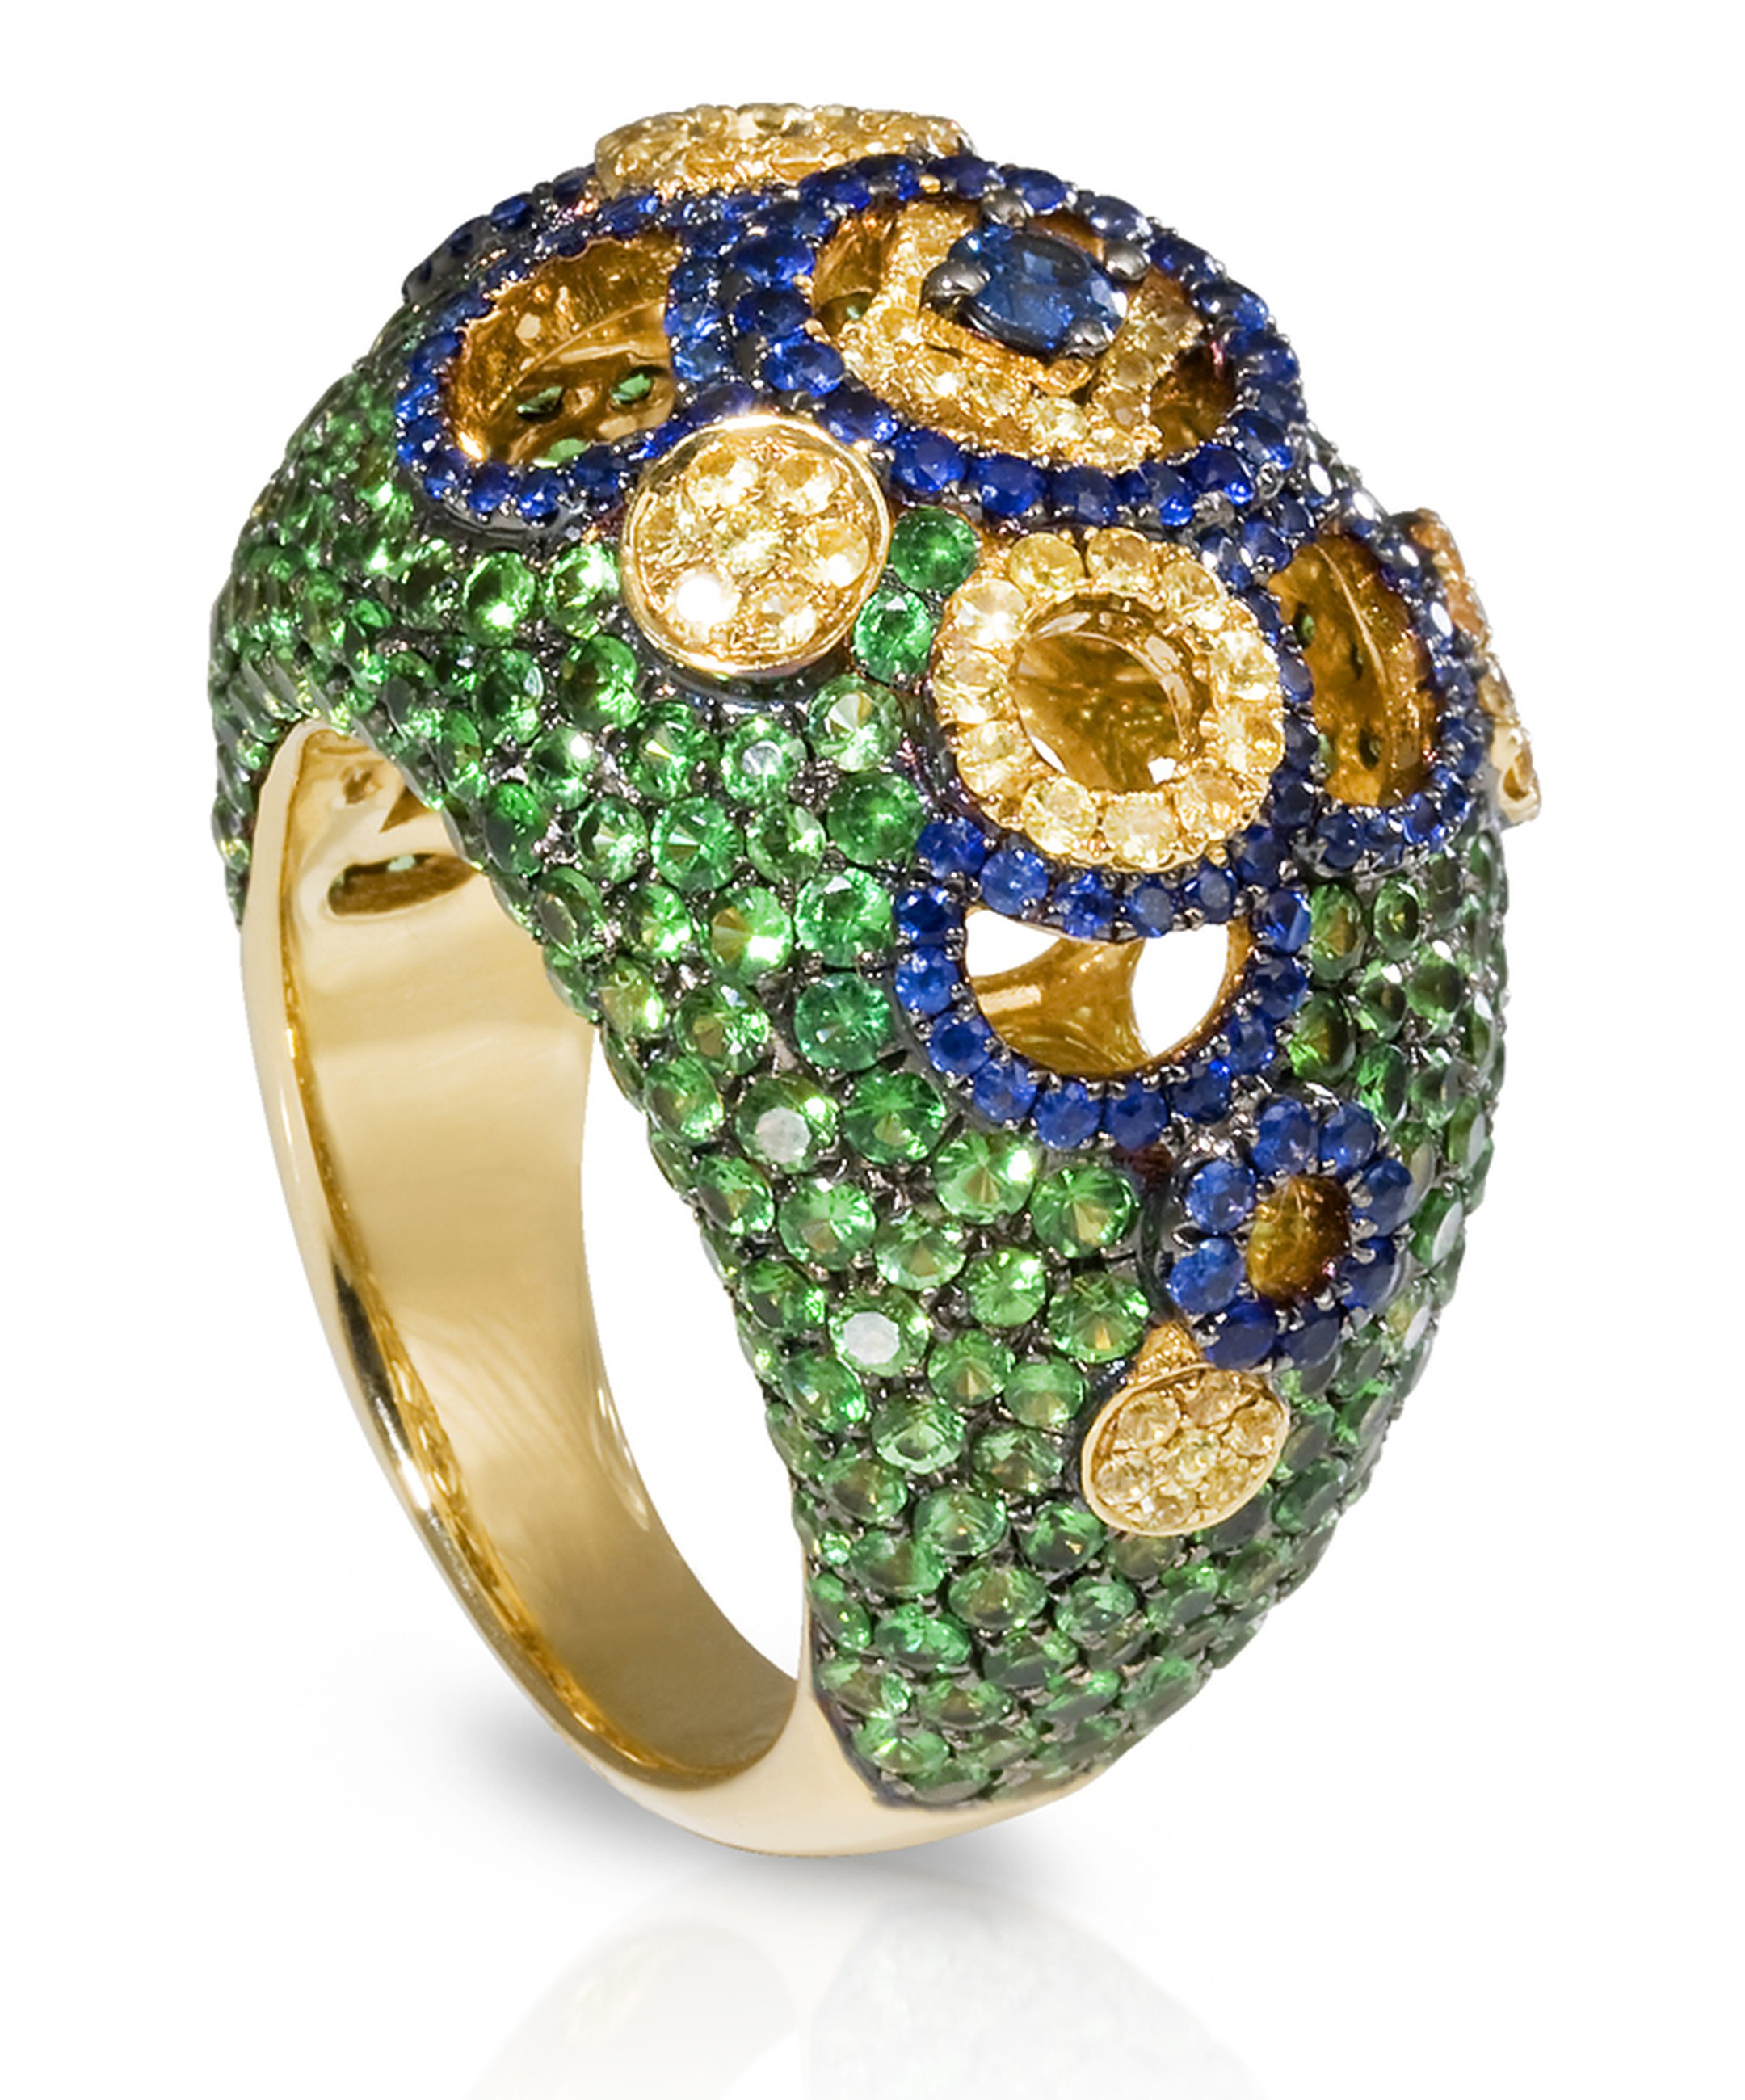 SHO Fine Jewellery. Coin Boule Ring in 18ct Yellow Gold with Blue and Yellow Sapphires and Green Tsavorites. £4770